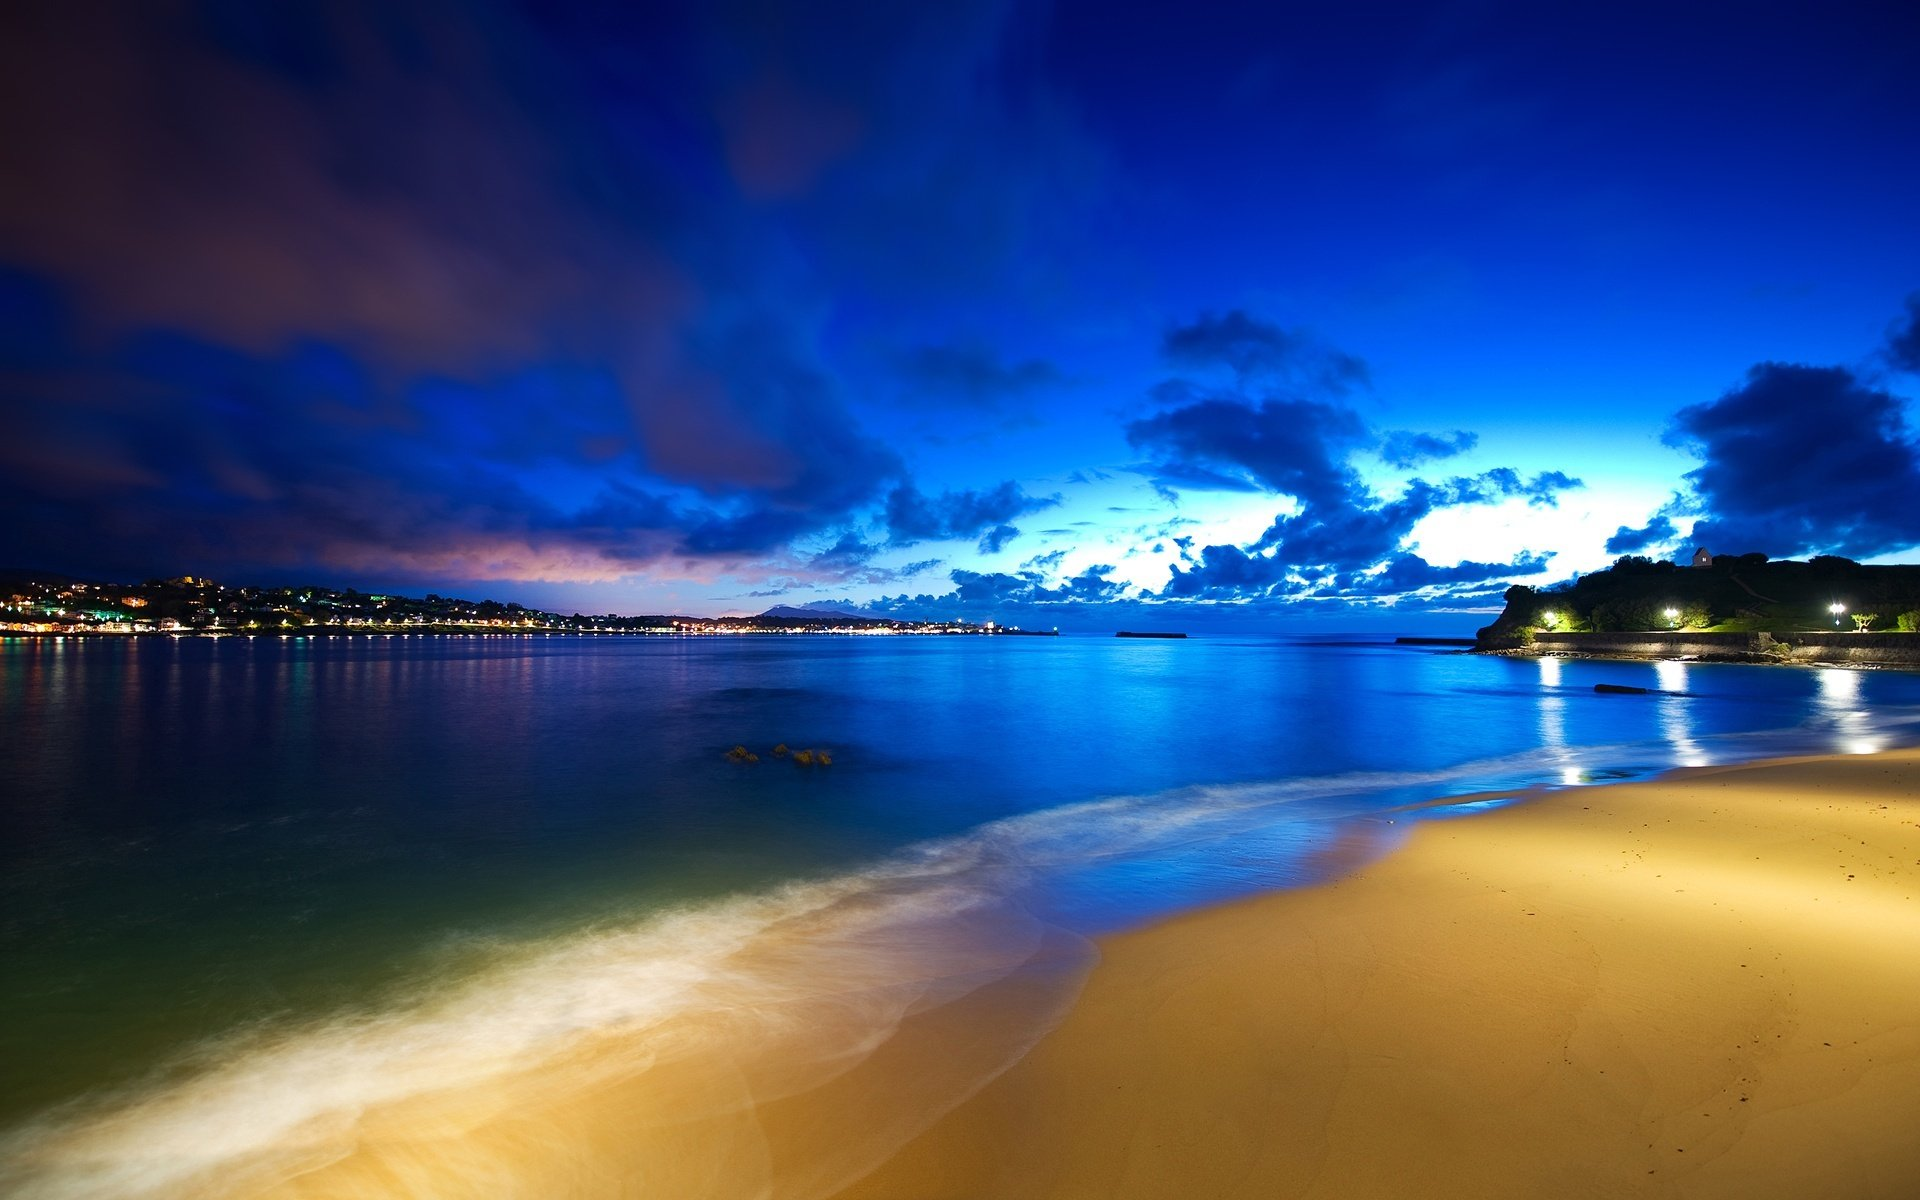 com inspiration beach backgrounds for computer desktop filesize 1920x1200